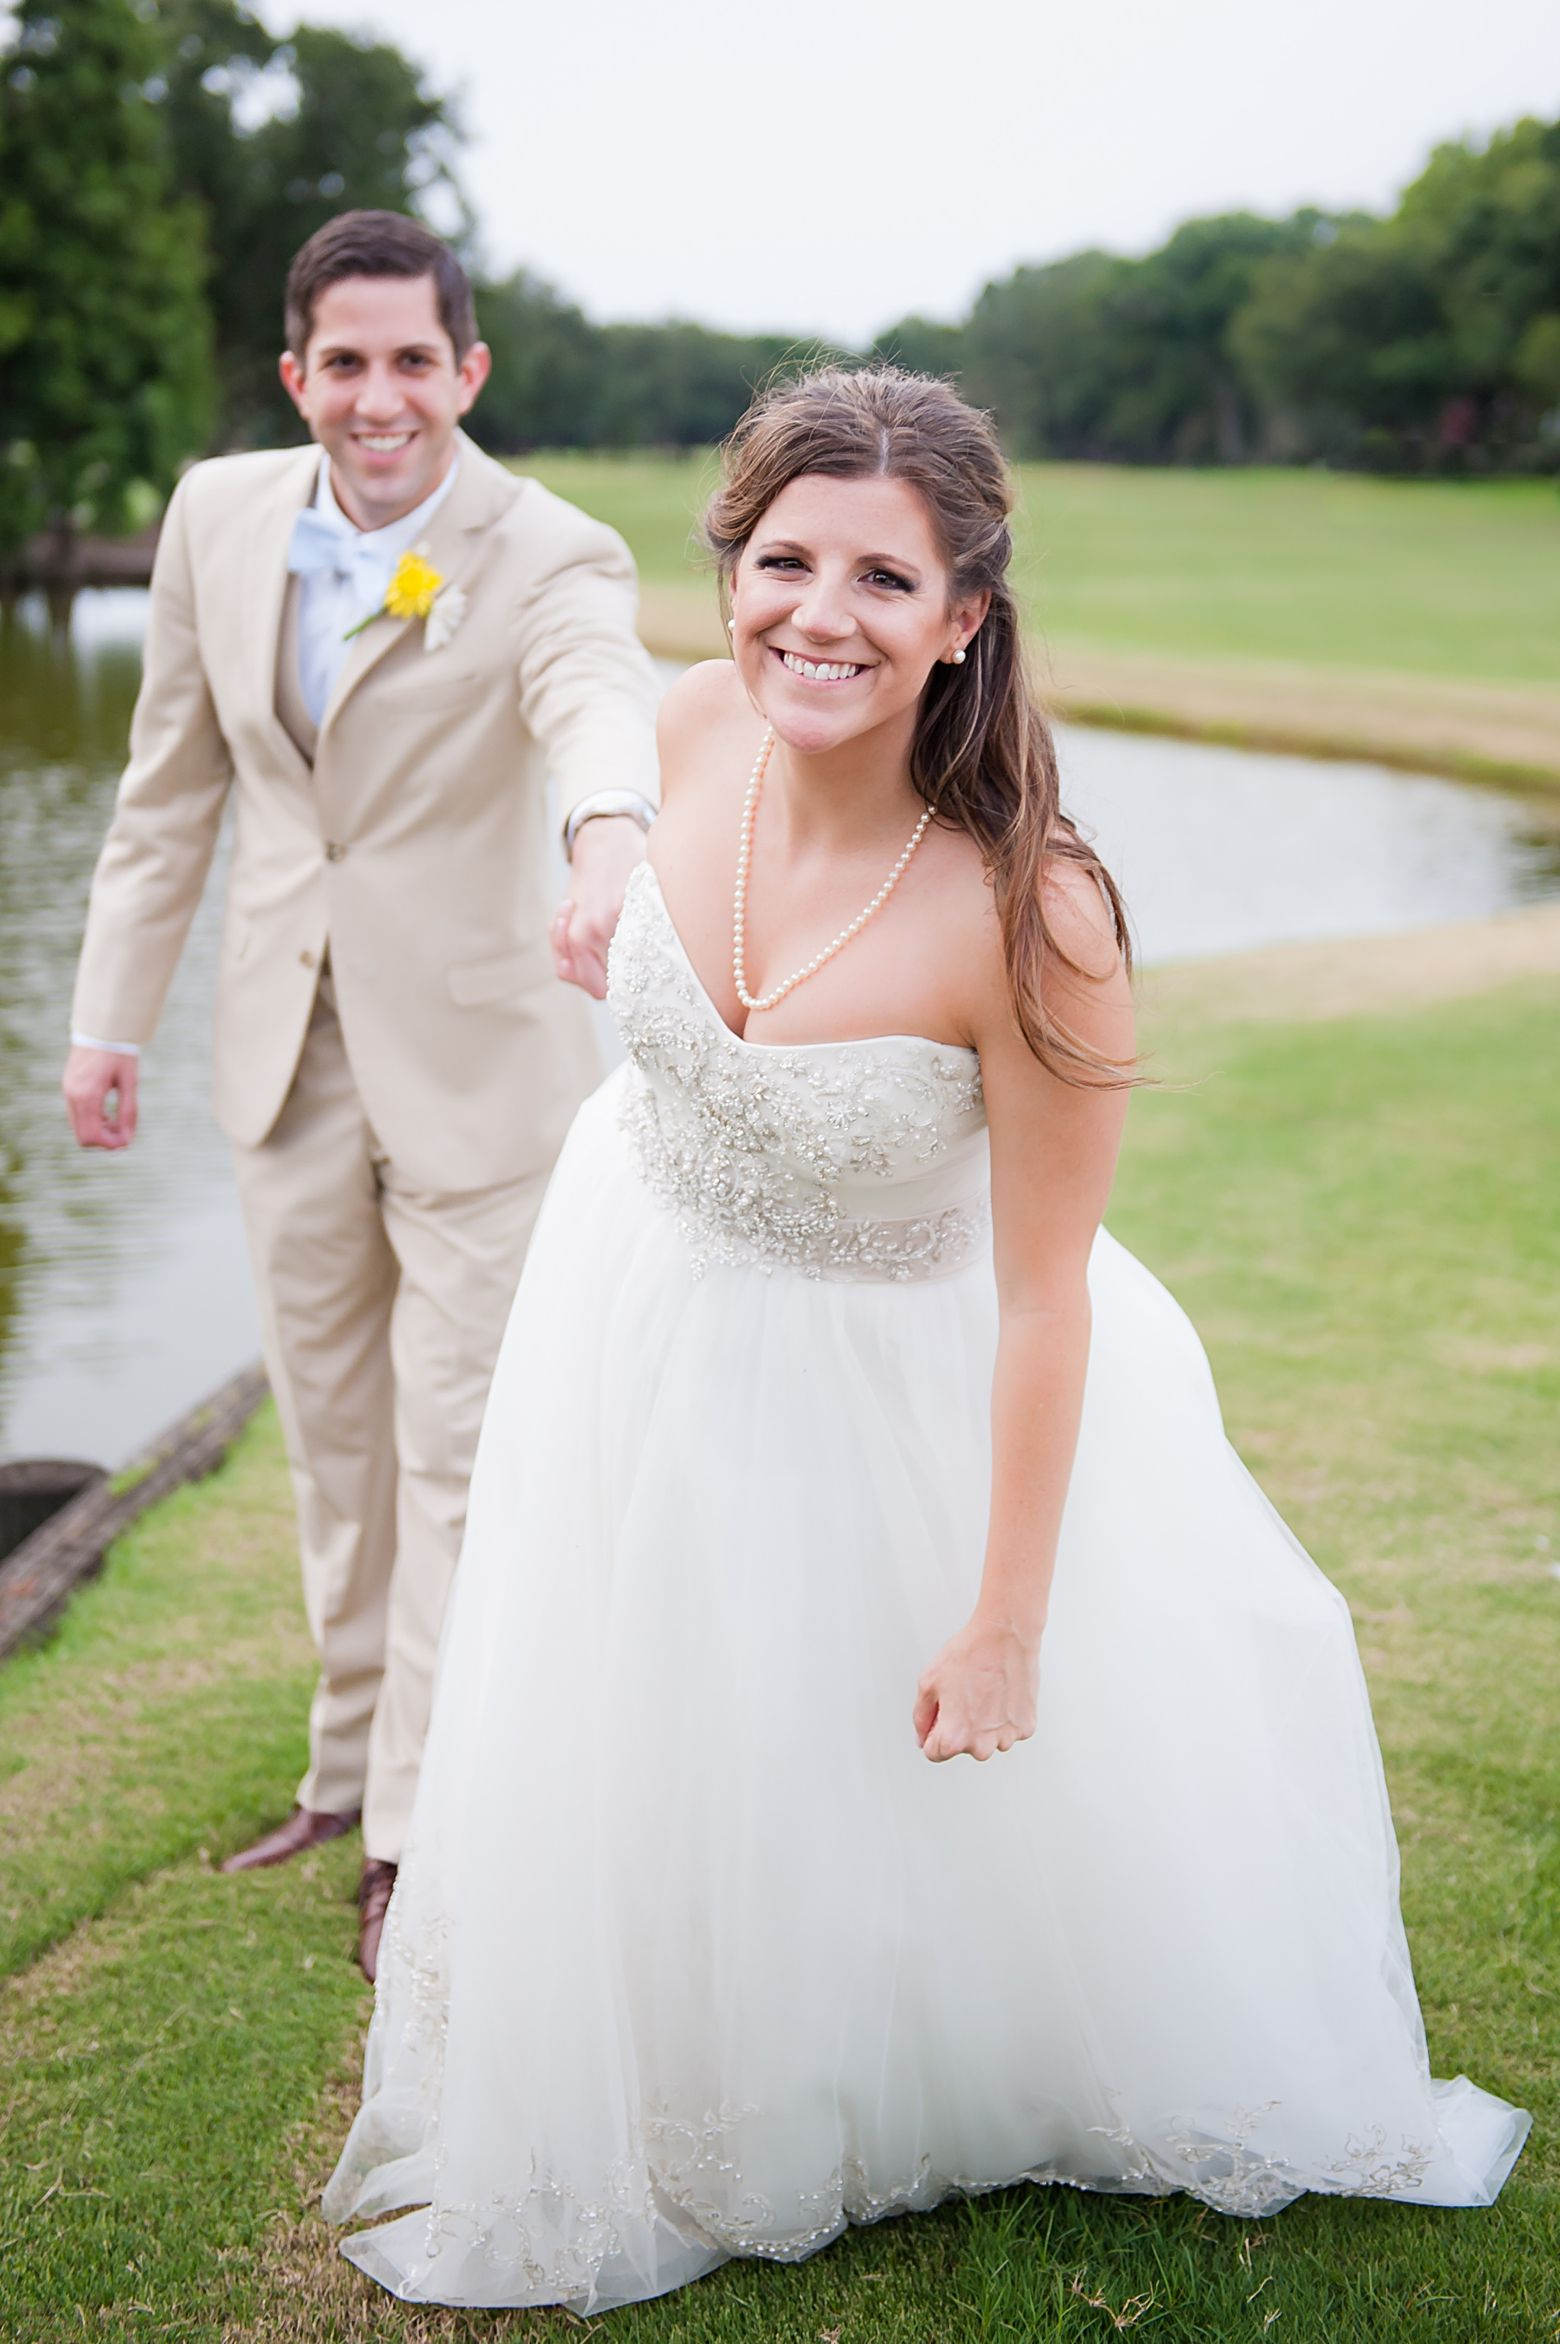 Wedding dresses lakeland fl  Classic Palma Ceia Country Club Wedding in Tampa Florida Captured